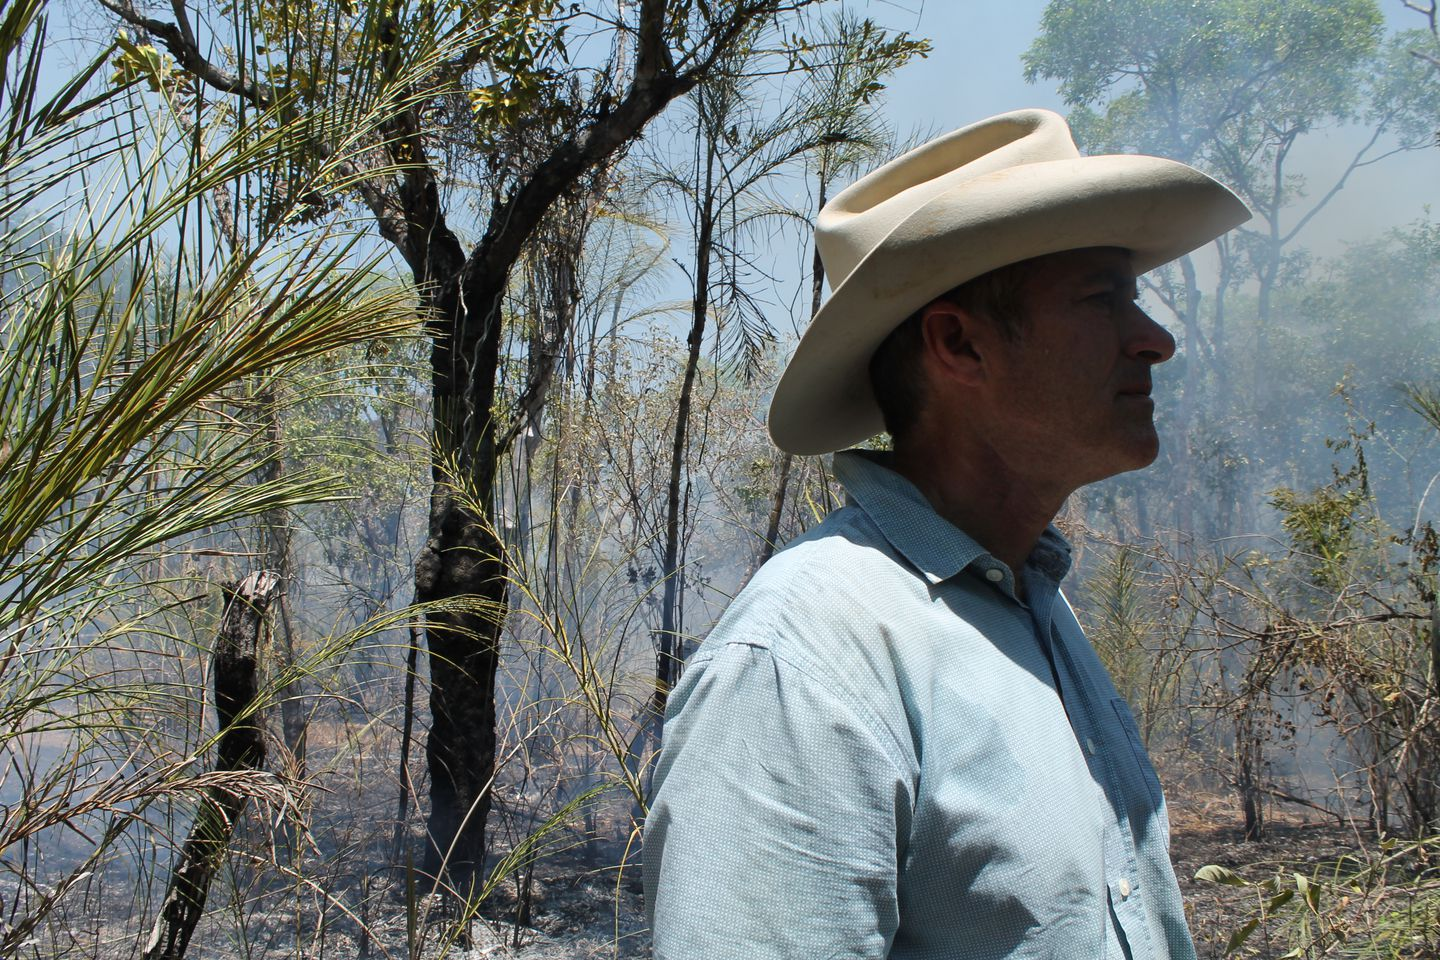 John Carter, former U.S. paratrooper, and leader of Brazil's Alliance Brigade, tracking down fires in Matto Grosso, Brazil.